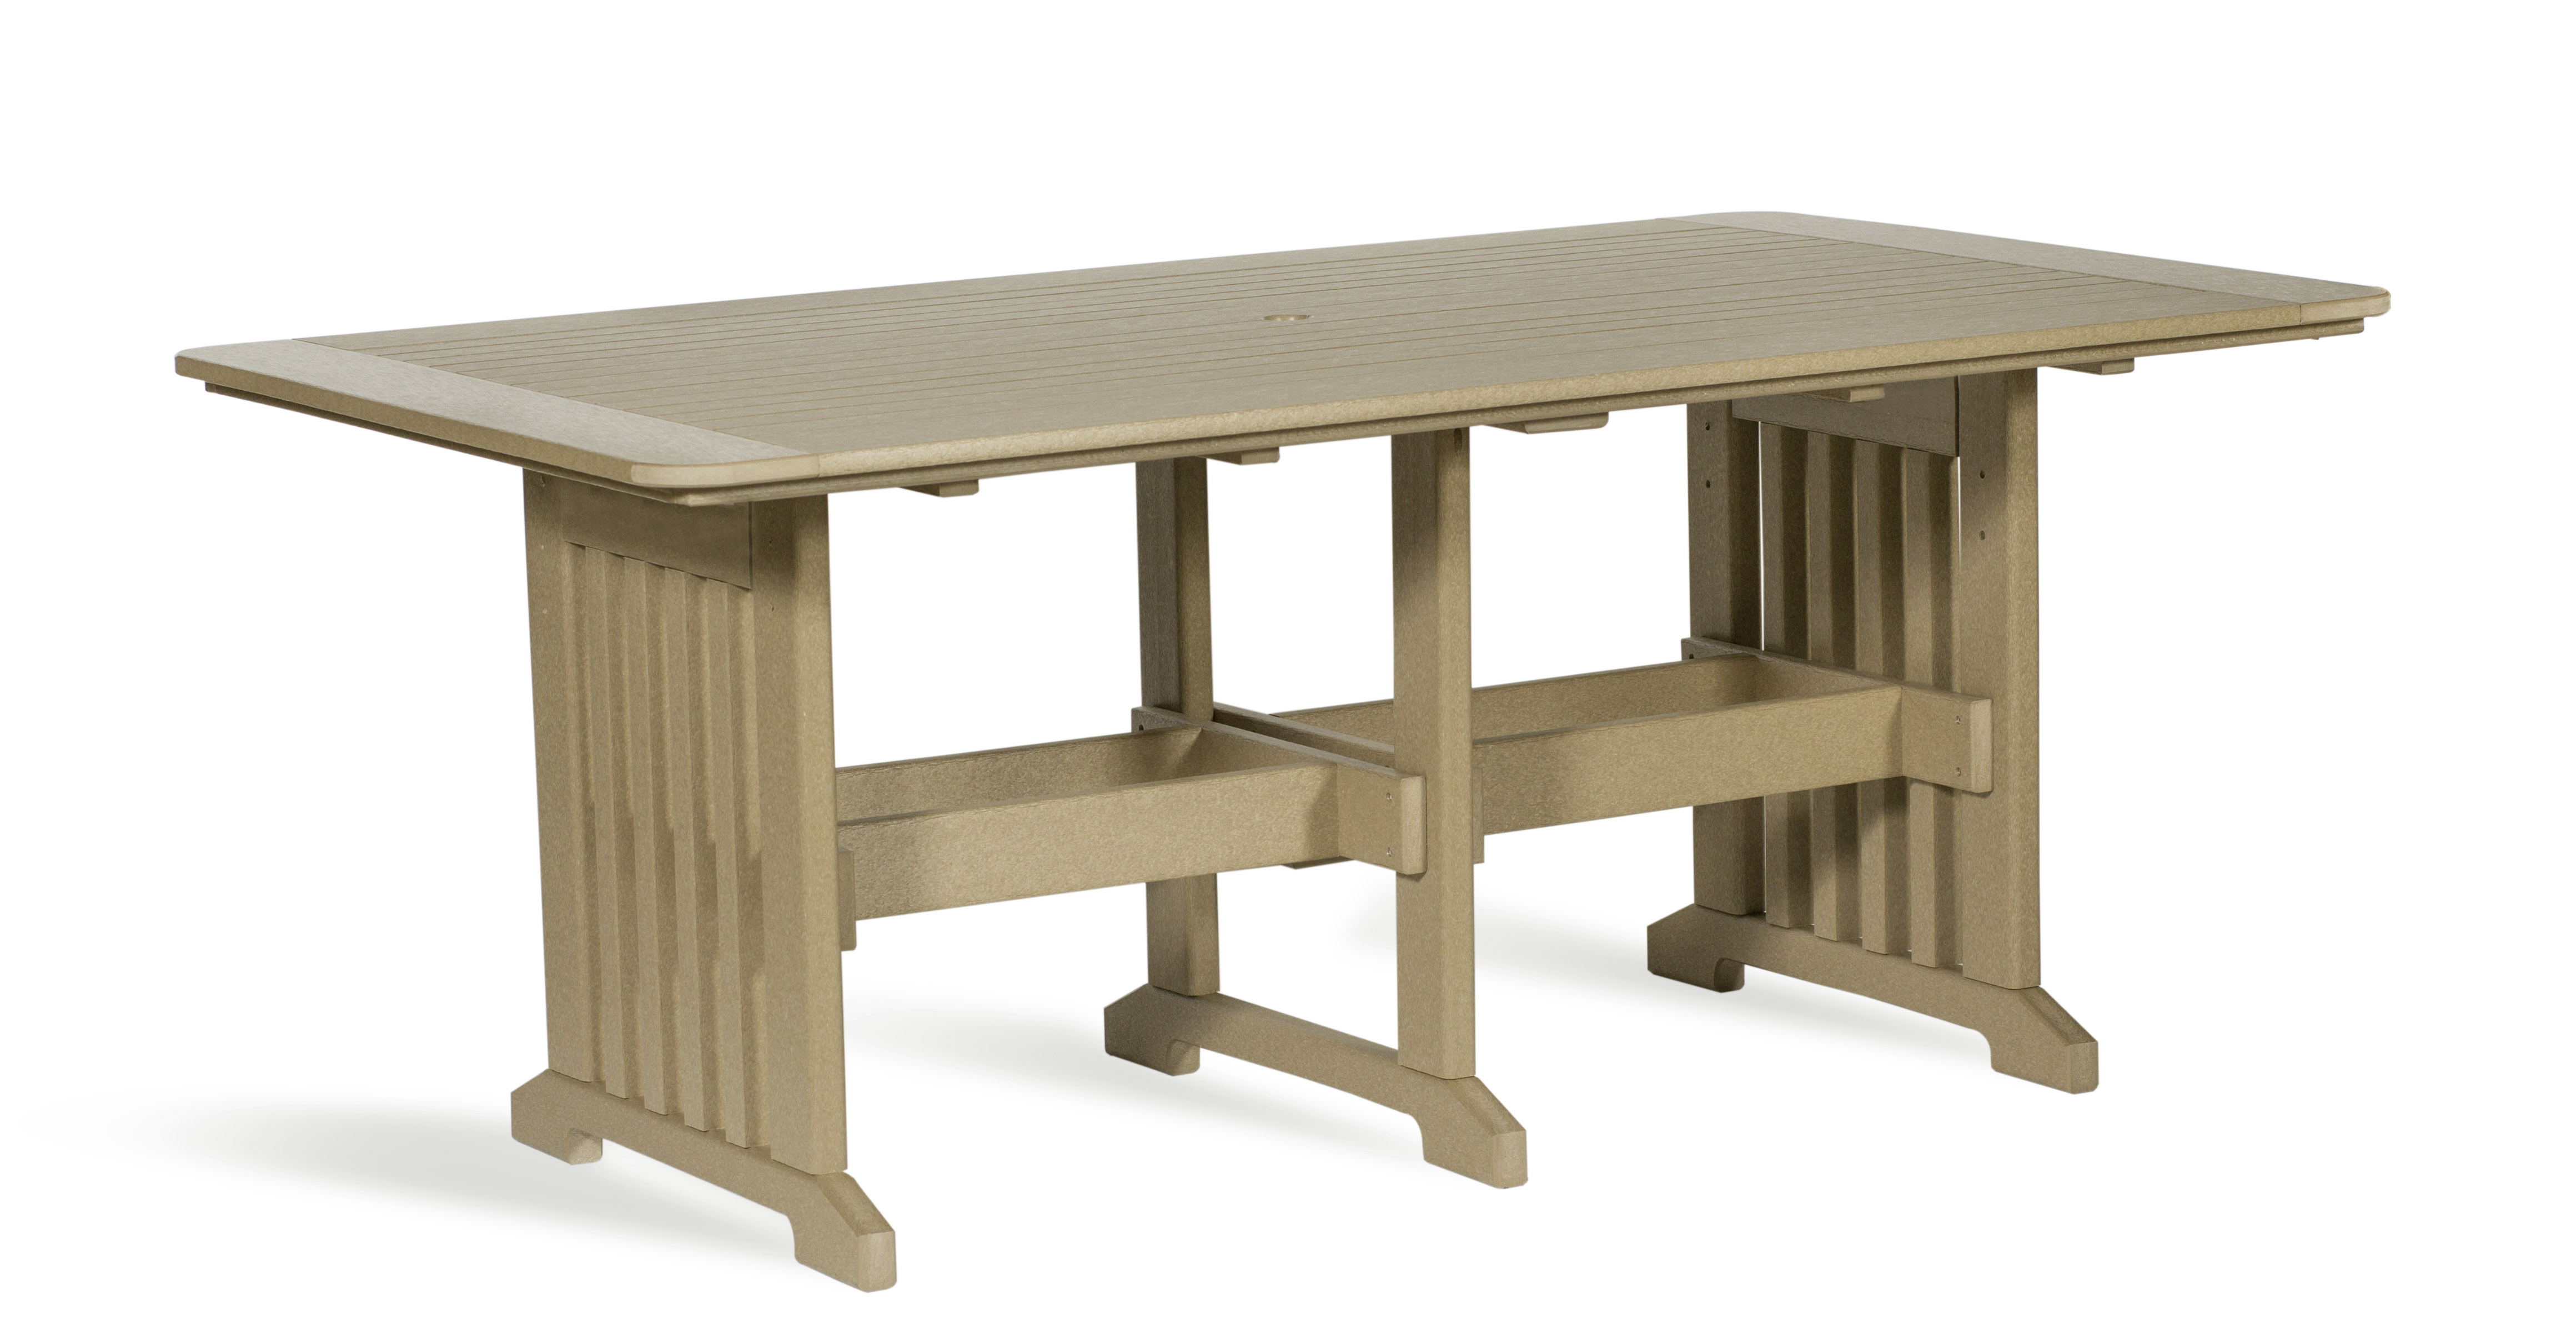 "Poly 43"" x 72"" Dining Table - Weatherwood"